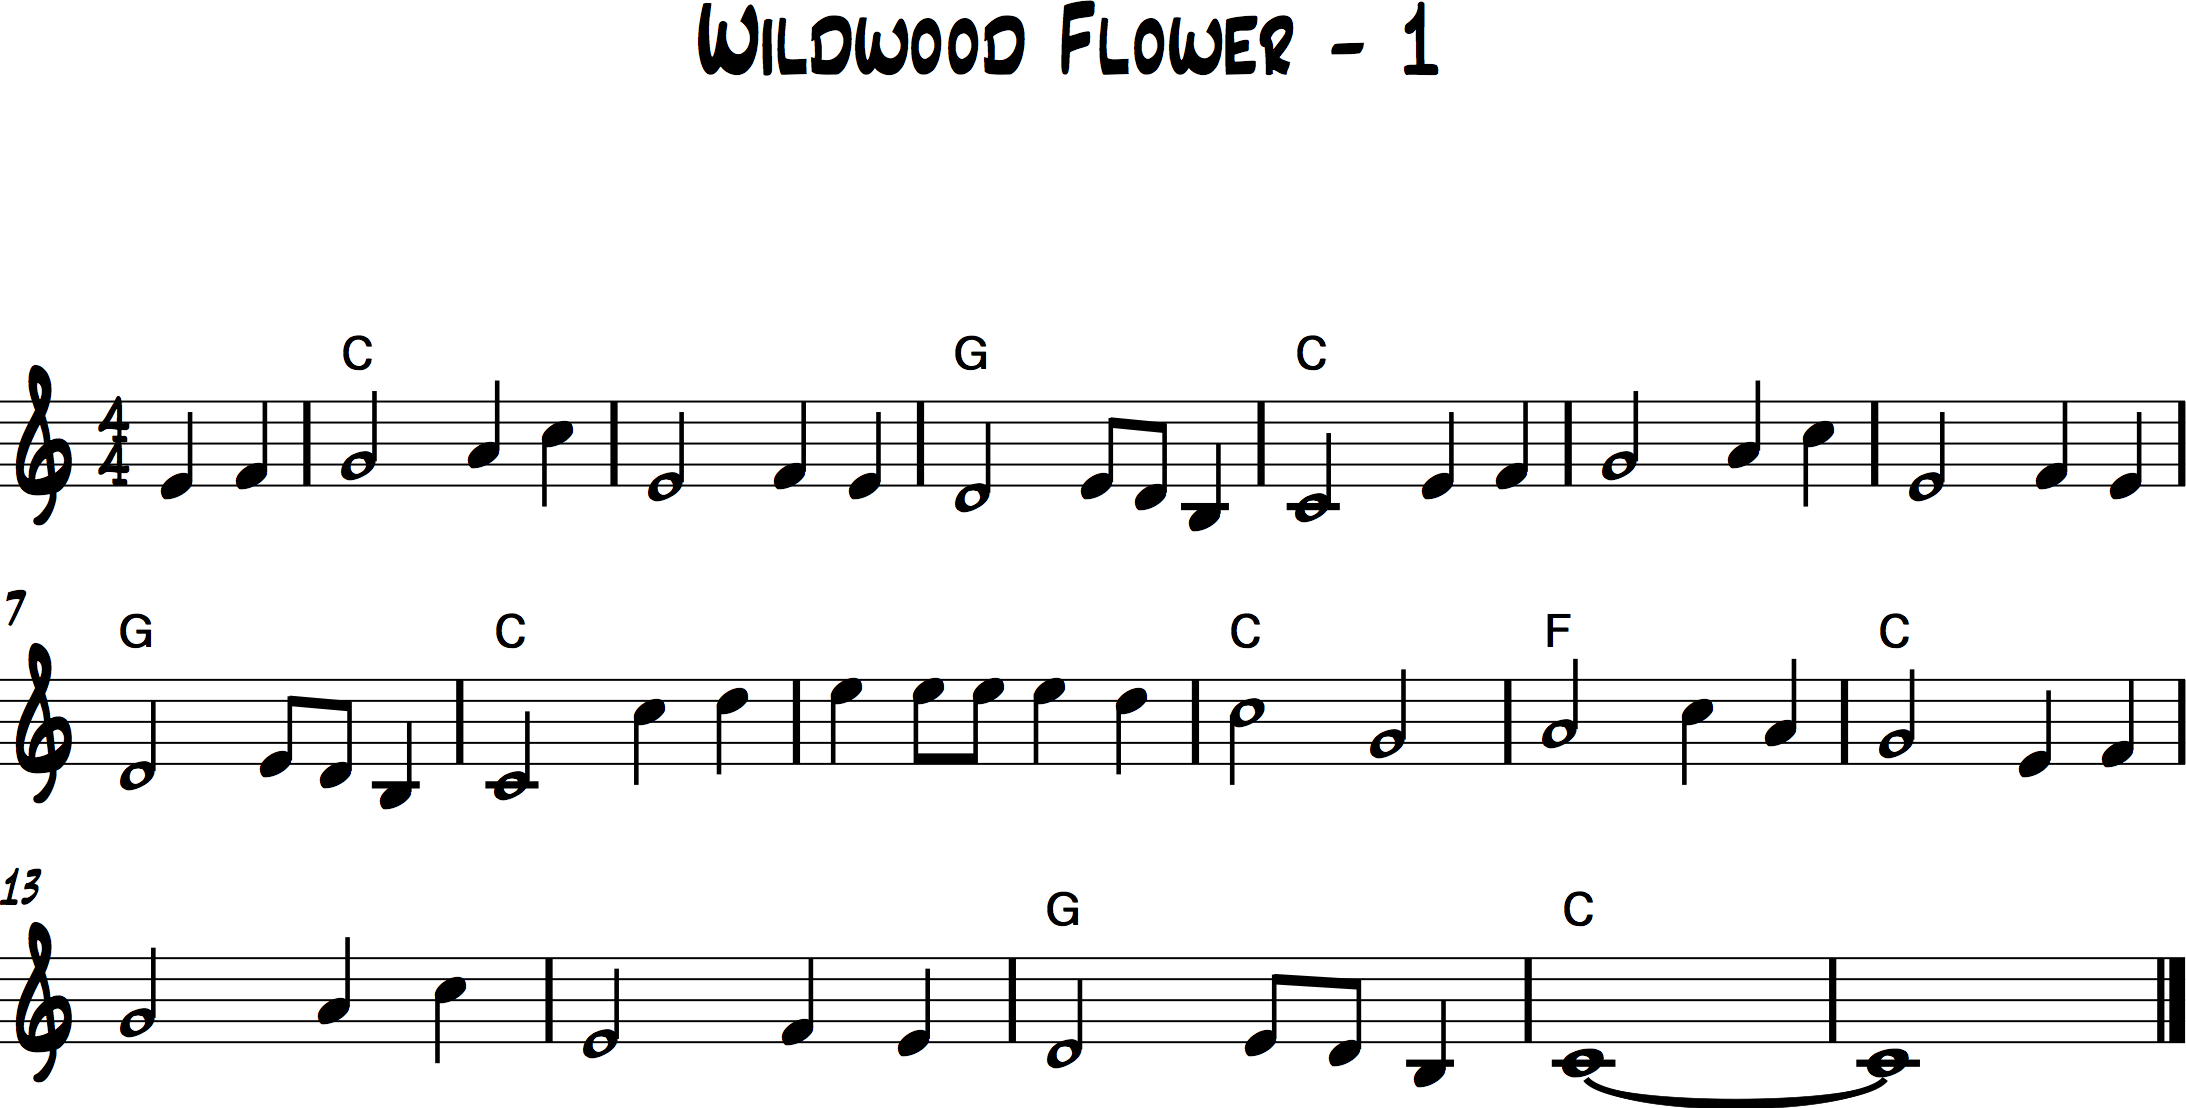 Wildwood Flower 1